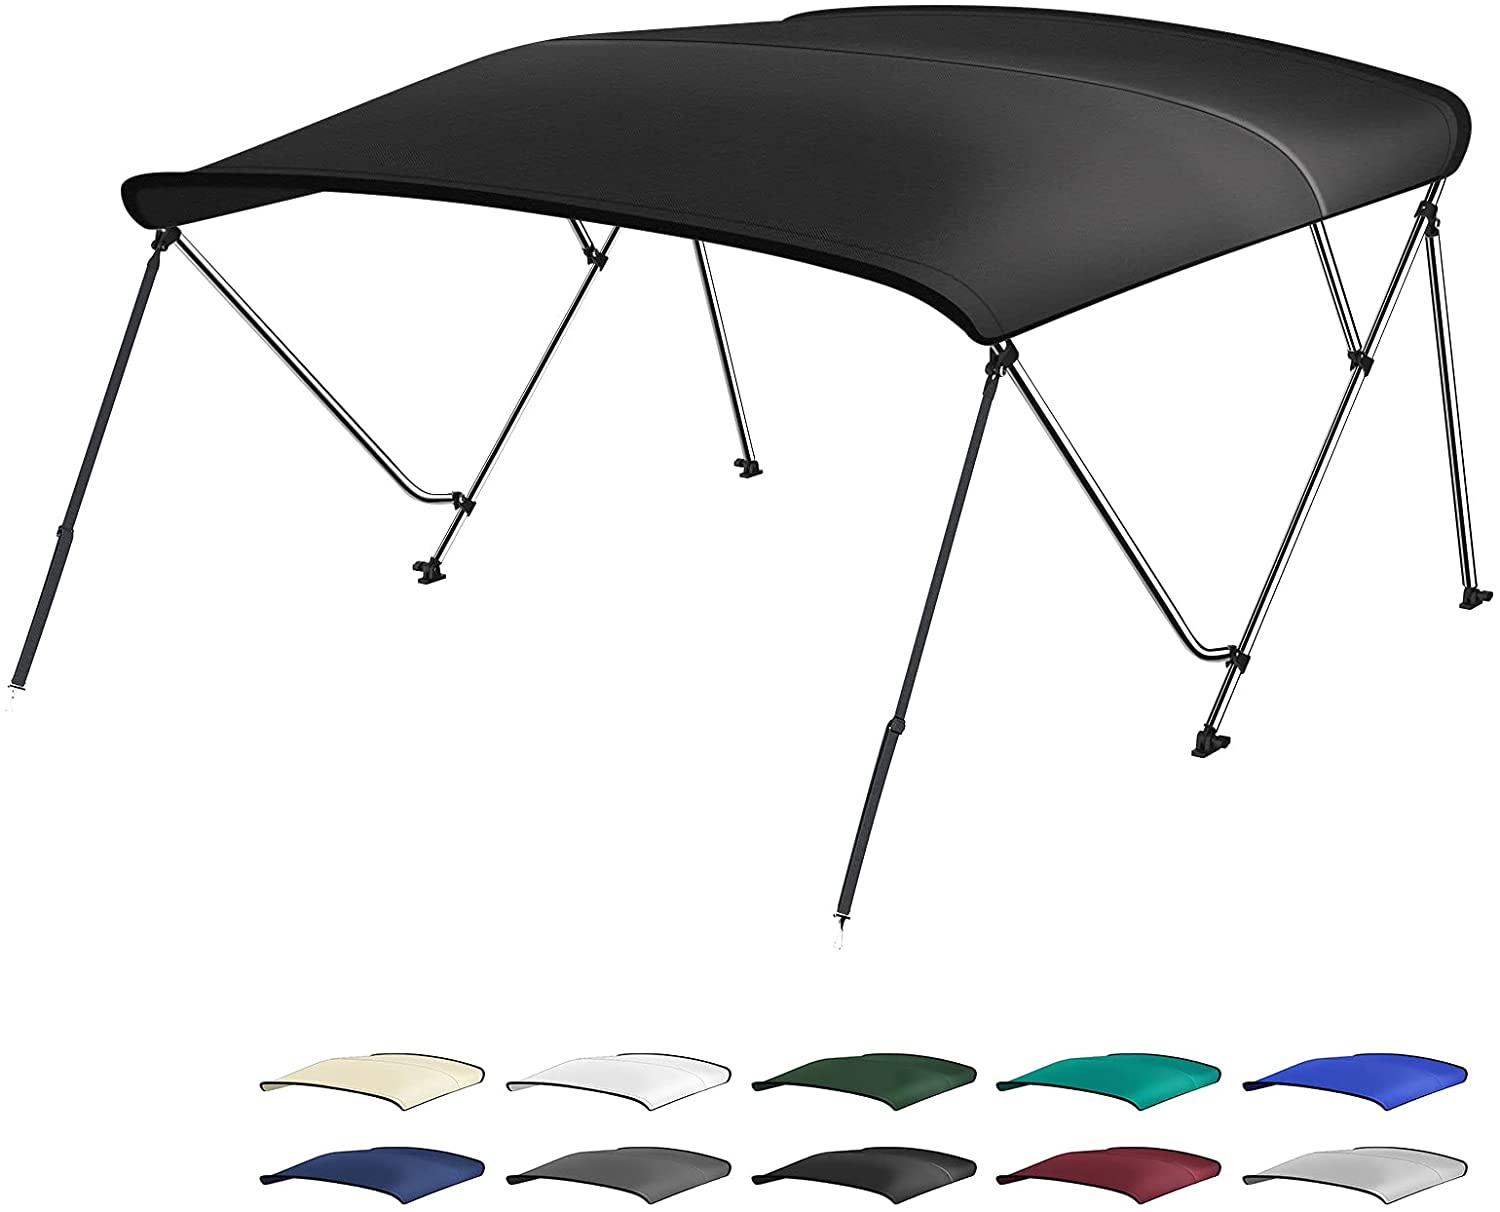 XGEAR 3-4 Bow Bimini Top Boat Cover Mou 人気上昇中 with Rear Support Poles お得クーポン発行中